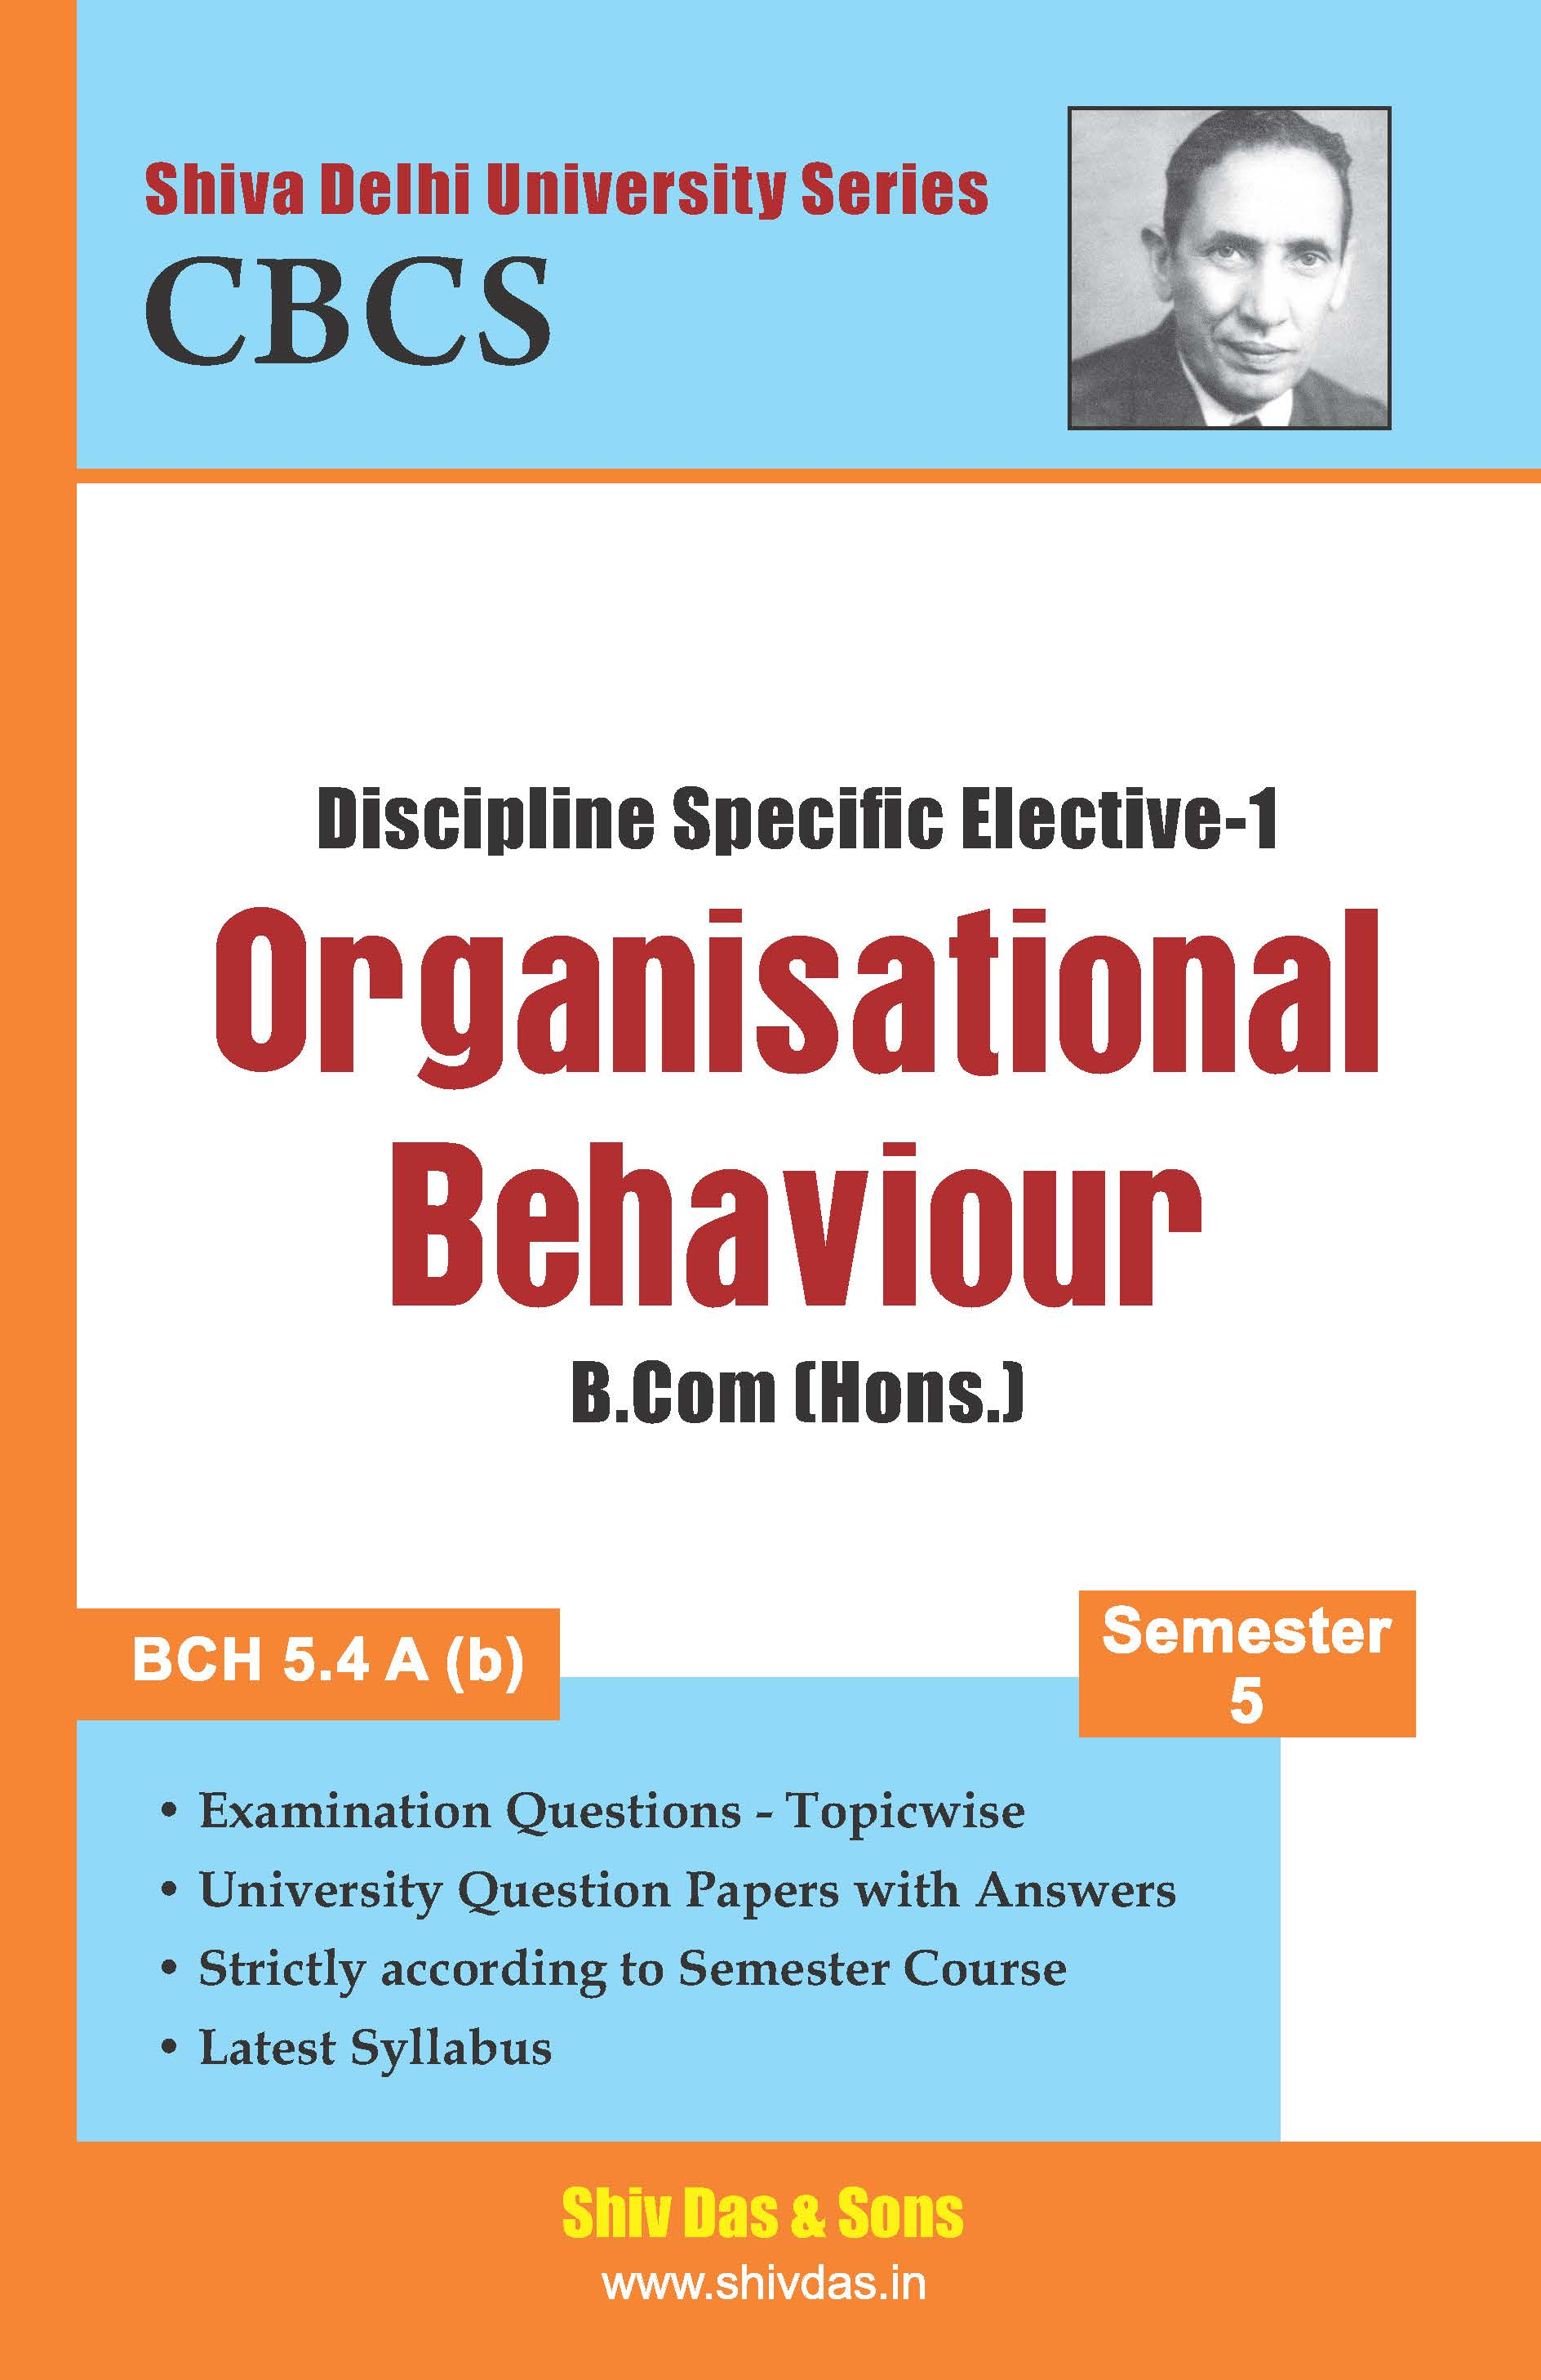 B.Com [Hons.] Semester-5 Organisational Behaviour